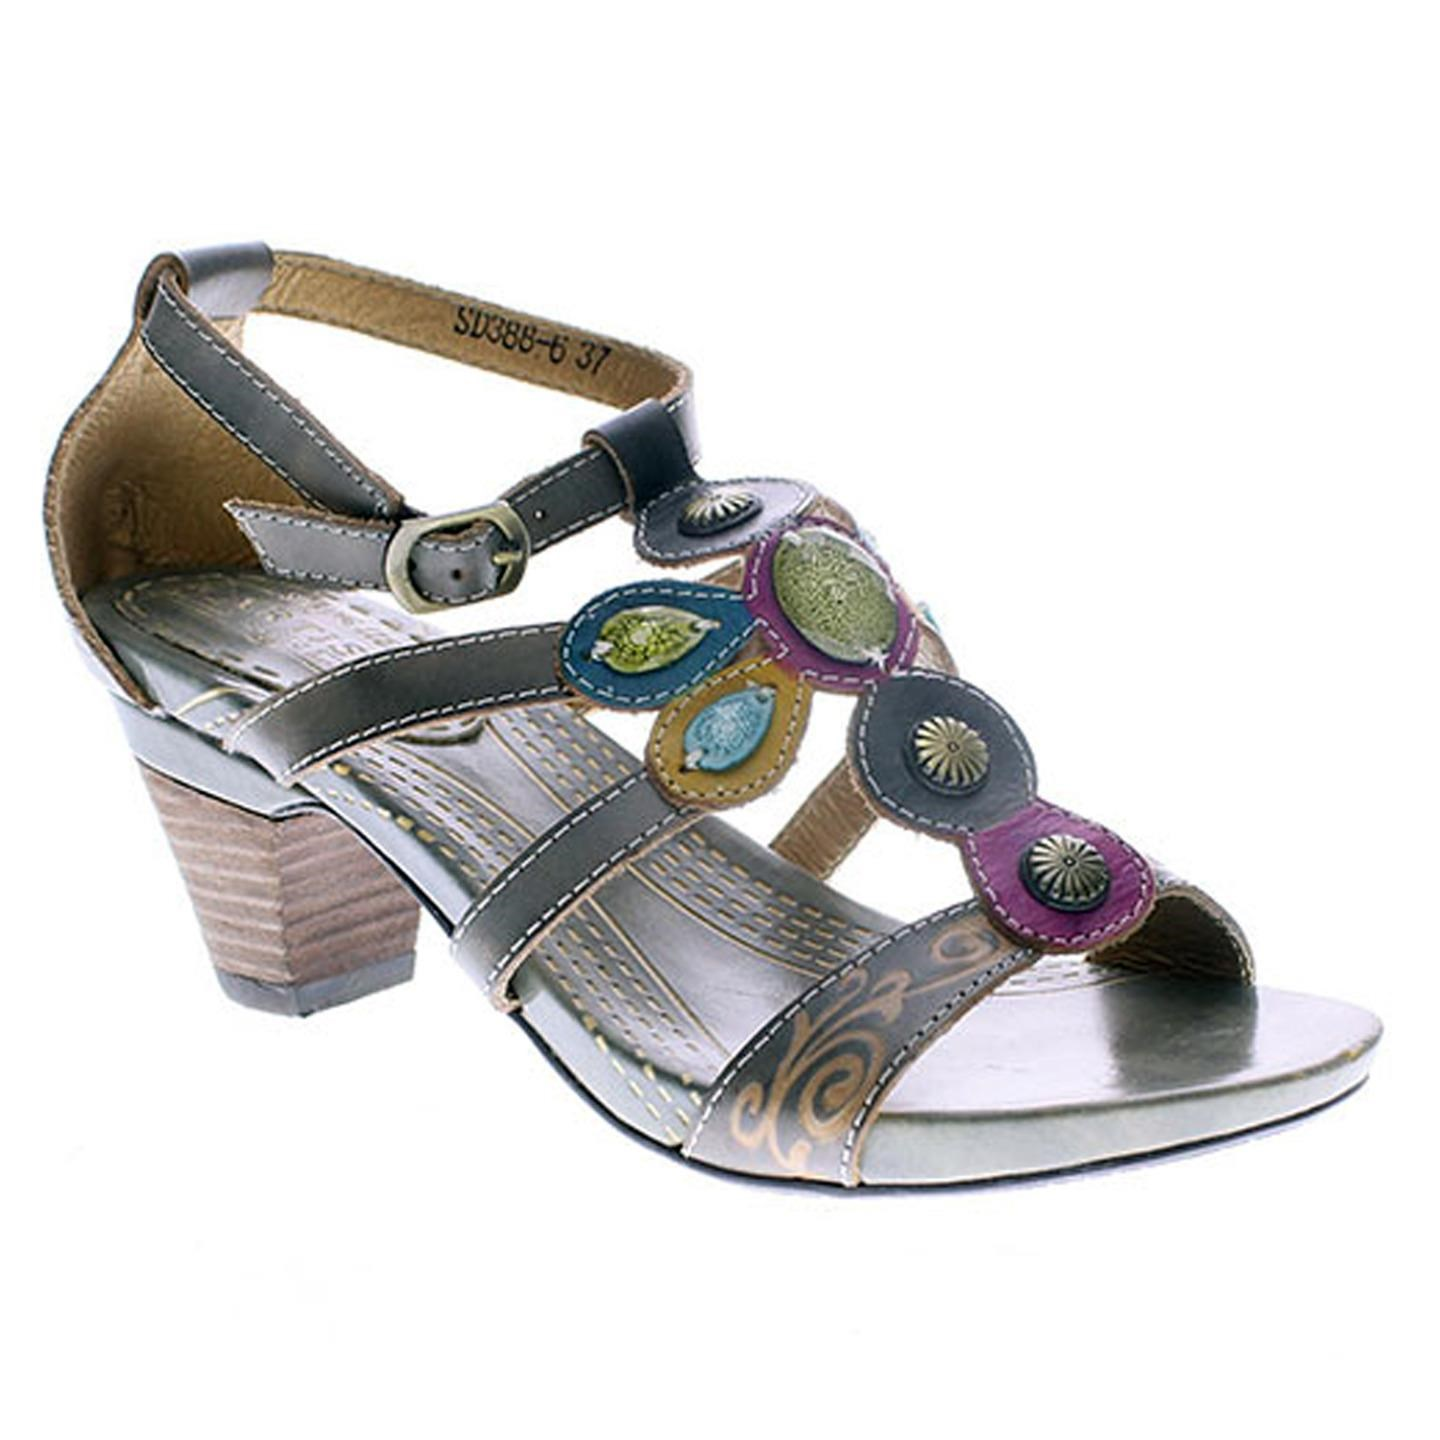 L'Artiste Frenzie By Spring Step Green Leather Sandal 40 EU   9 US Women by Spring Step